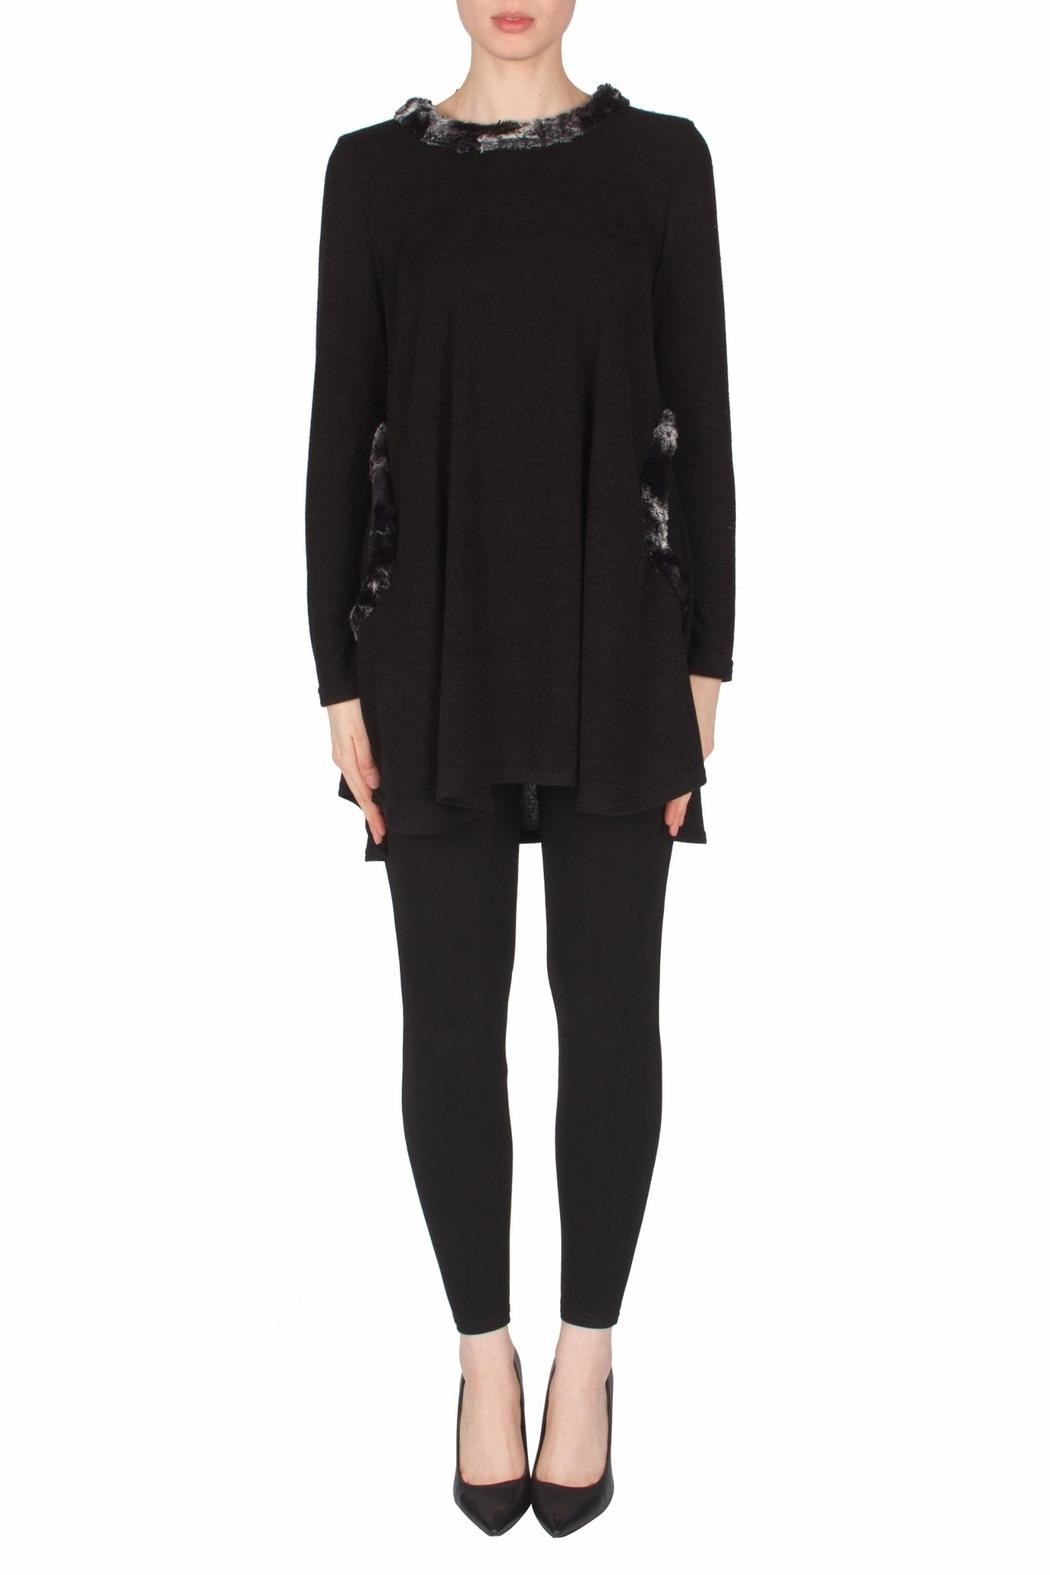 Joseph Ribkoff Faux Fur Tunic - Front Cropped Image